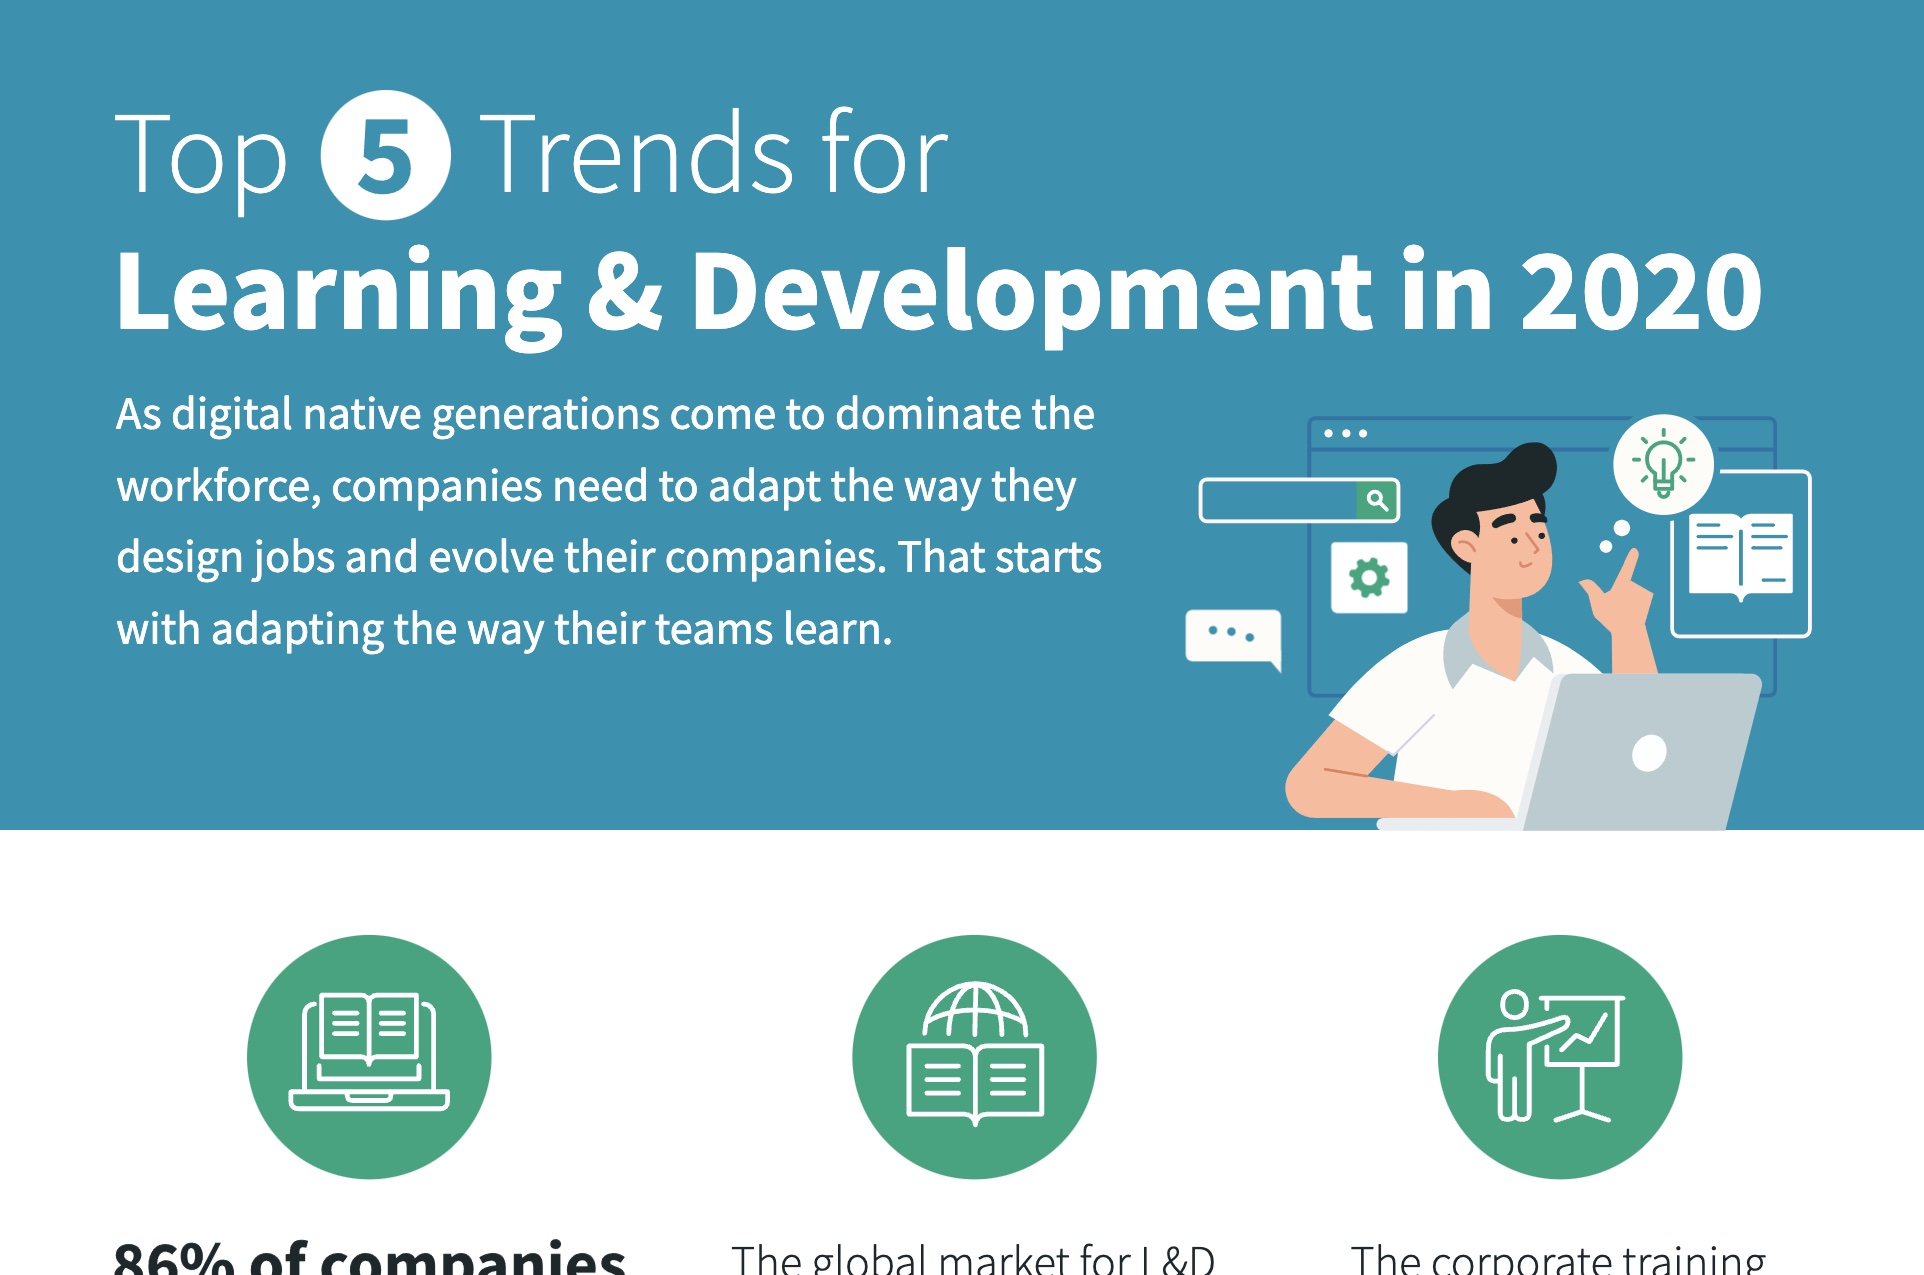 Top 5 Trends for Learning & Development